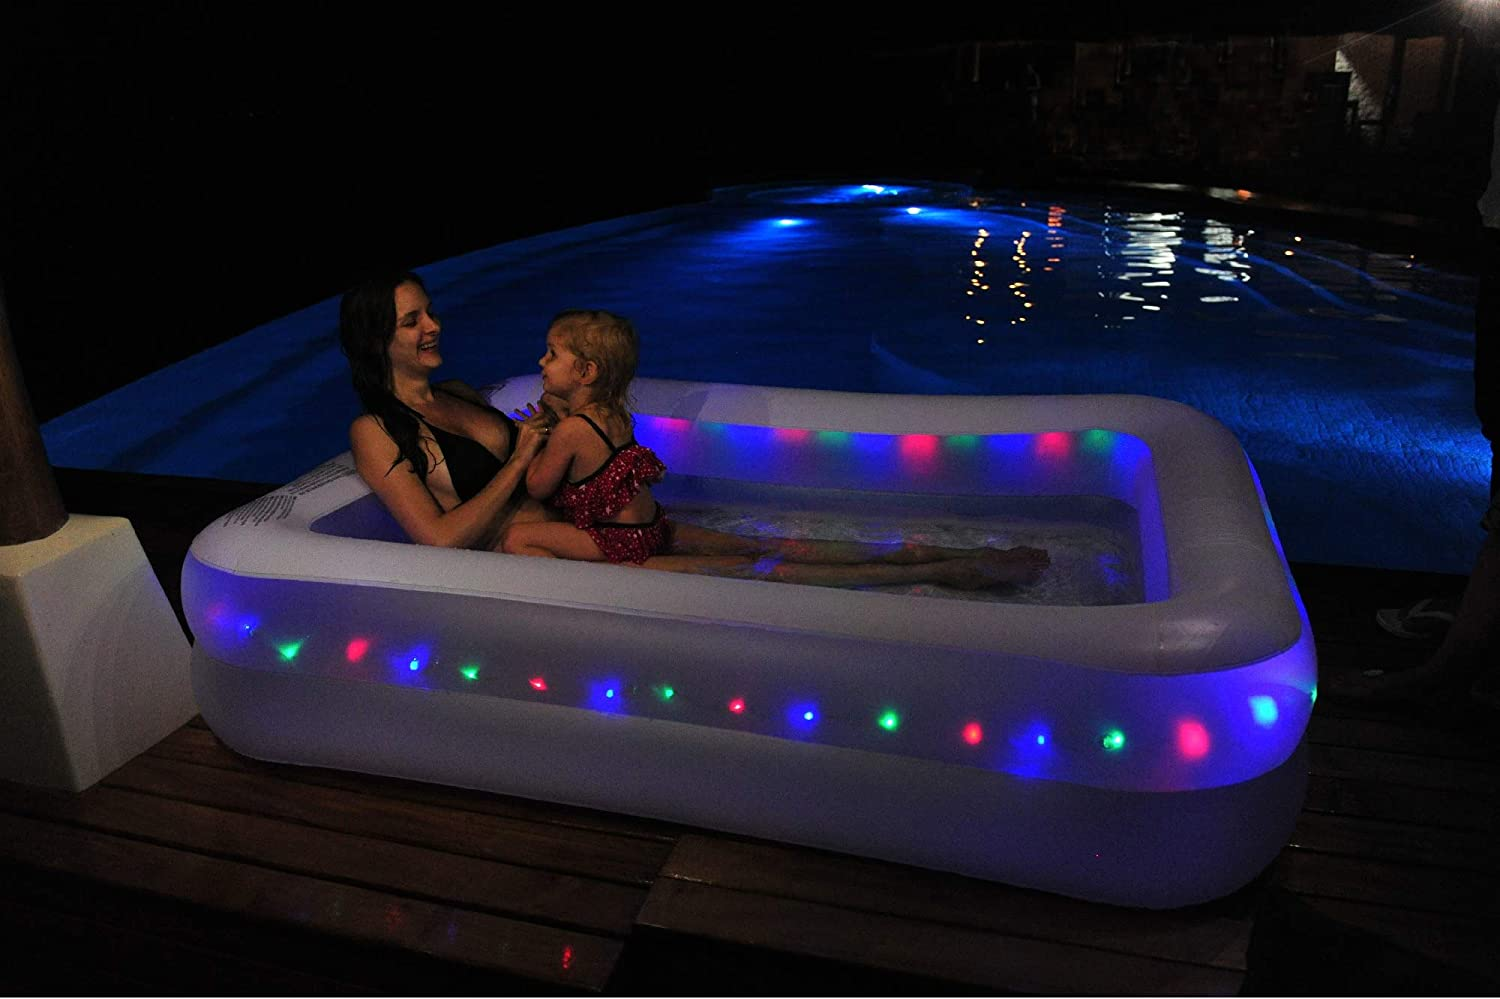 Bundle of Jilong Crystals Inflatable Led Lighted Rectangular Paddling Pool Water Fun for Kids and Family 79 x 59 x 20 /& Electric Air Pump Air Mattress Pump for Inflatables Pool Floats 3 Nozzles